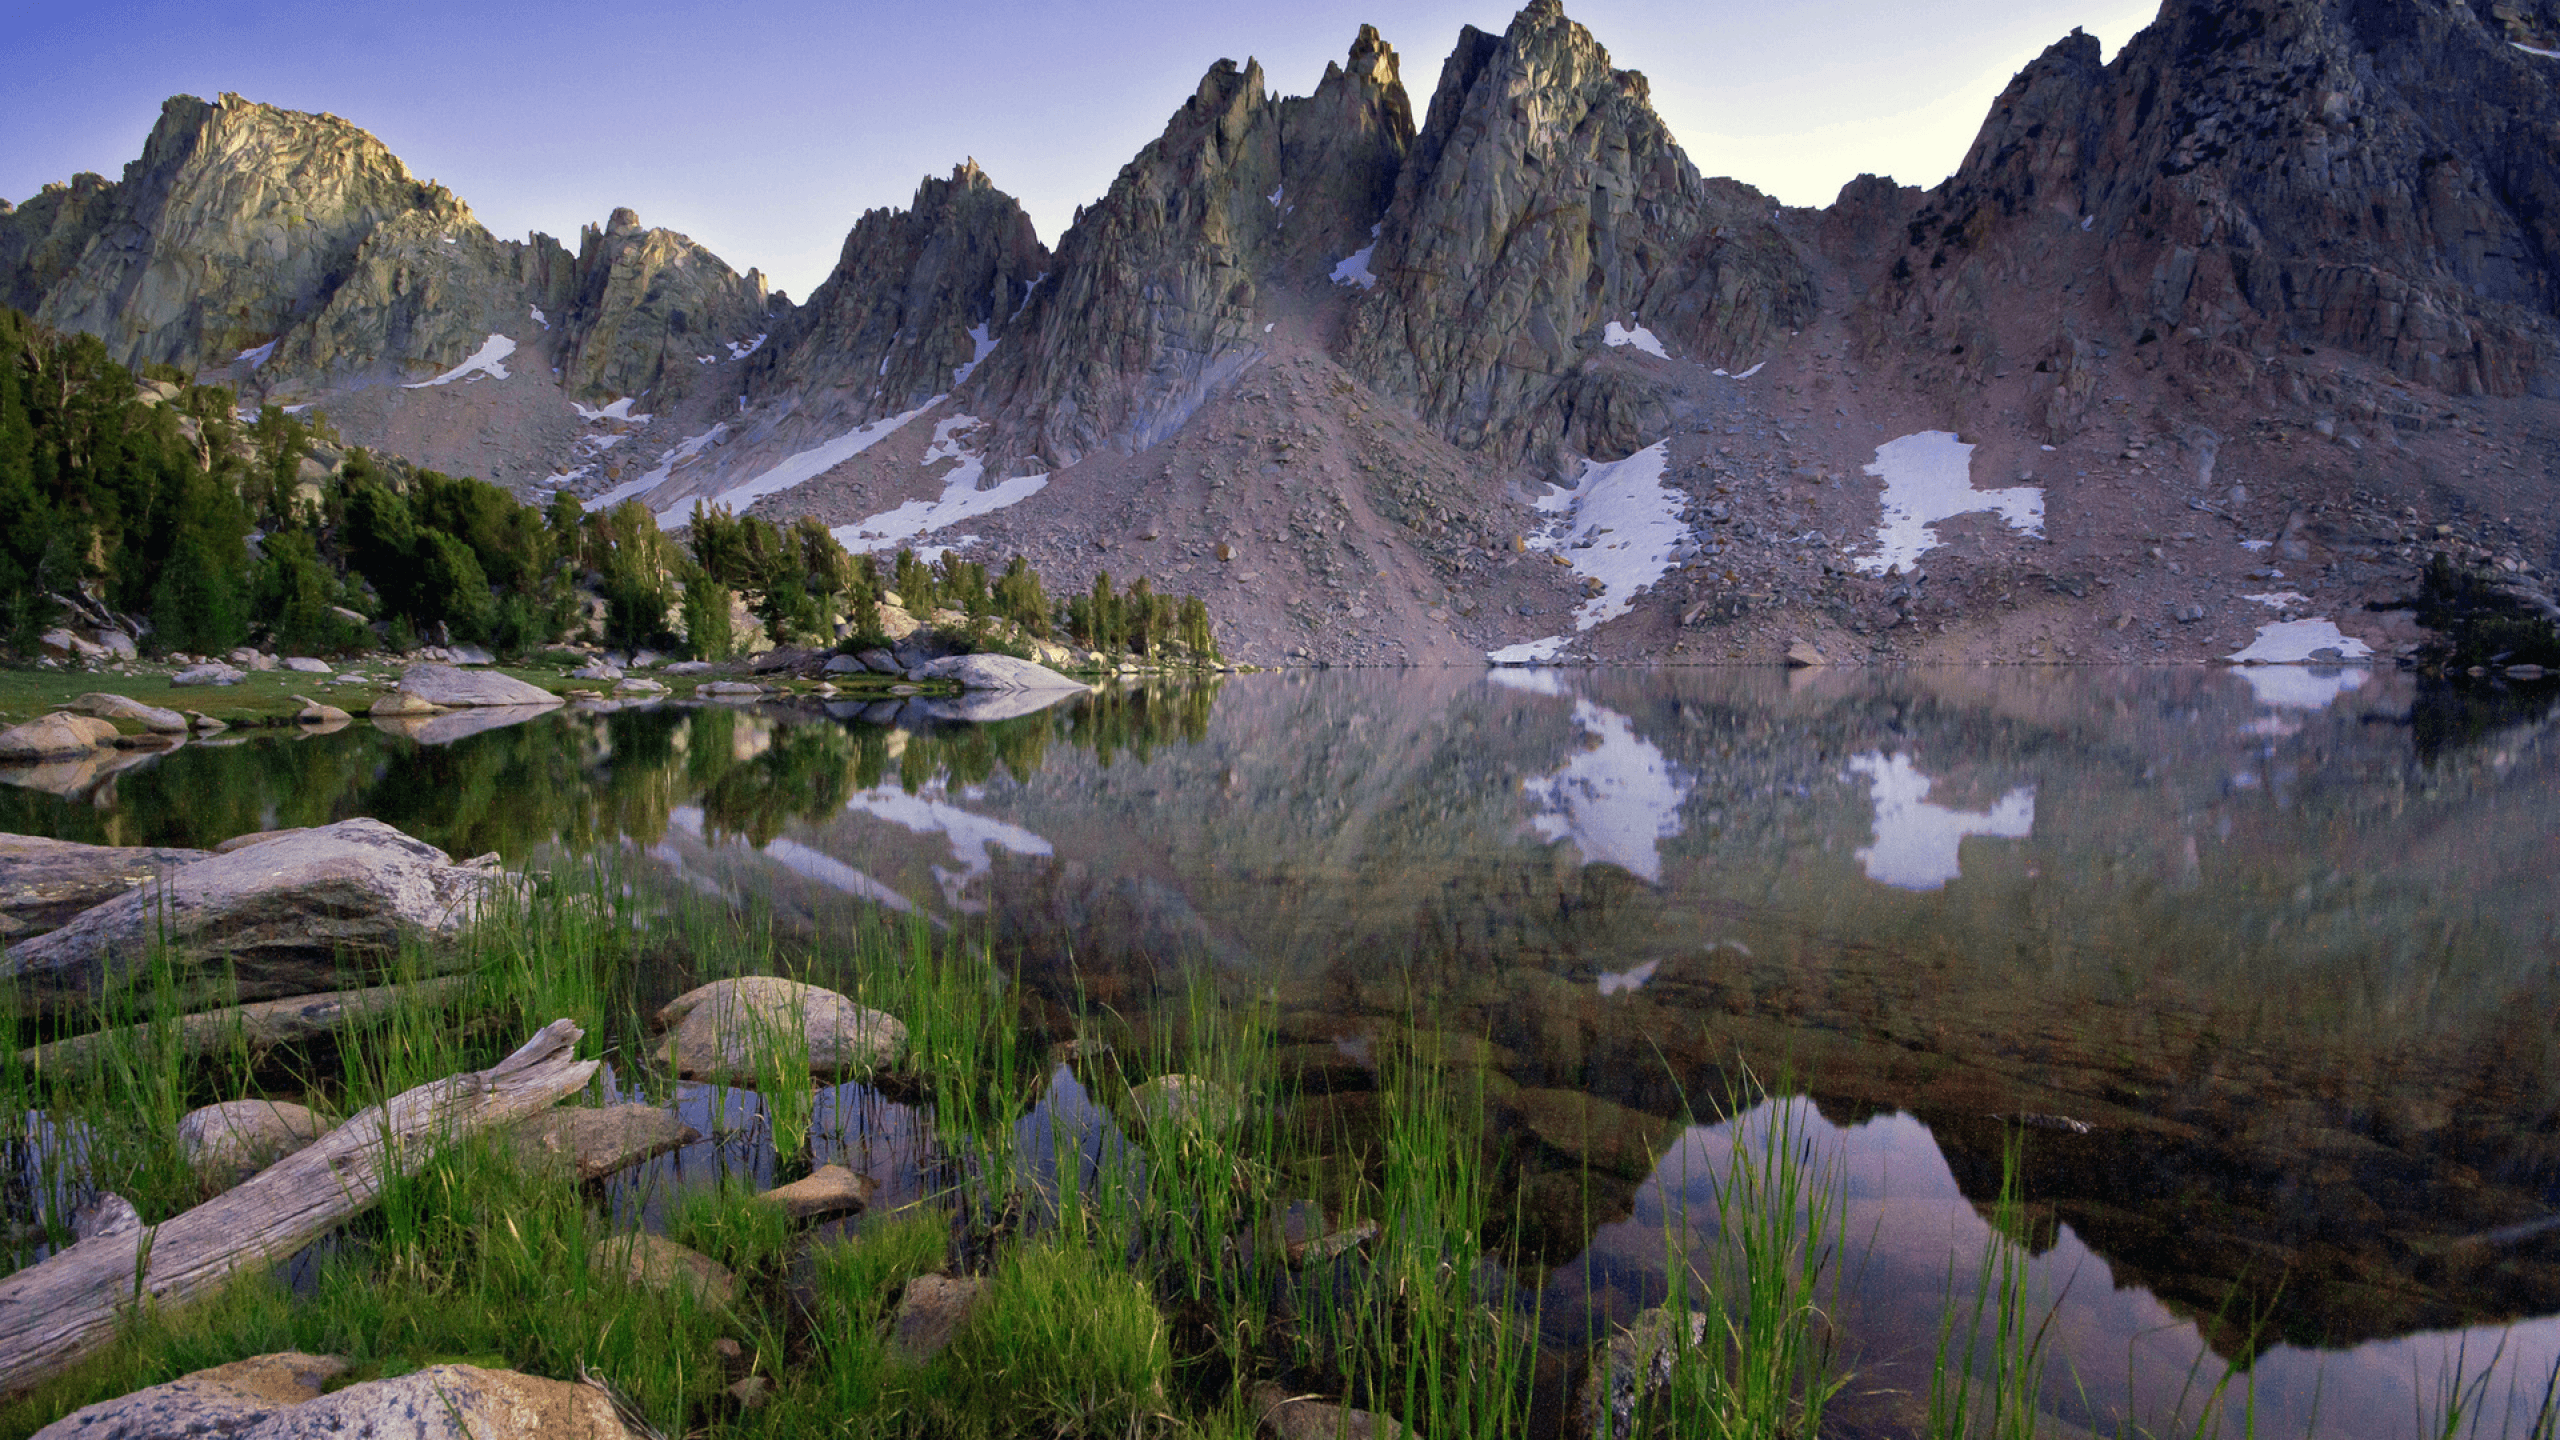 Download 2560x1440 rae lakes, sierra nevada, kings canyon national